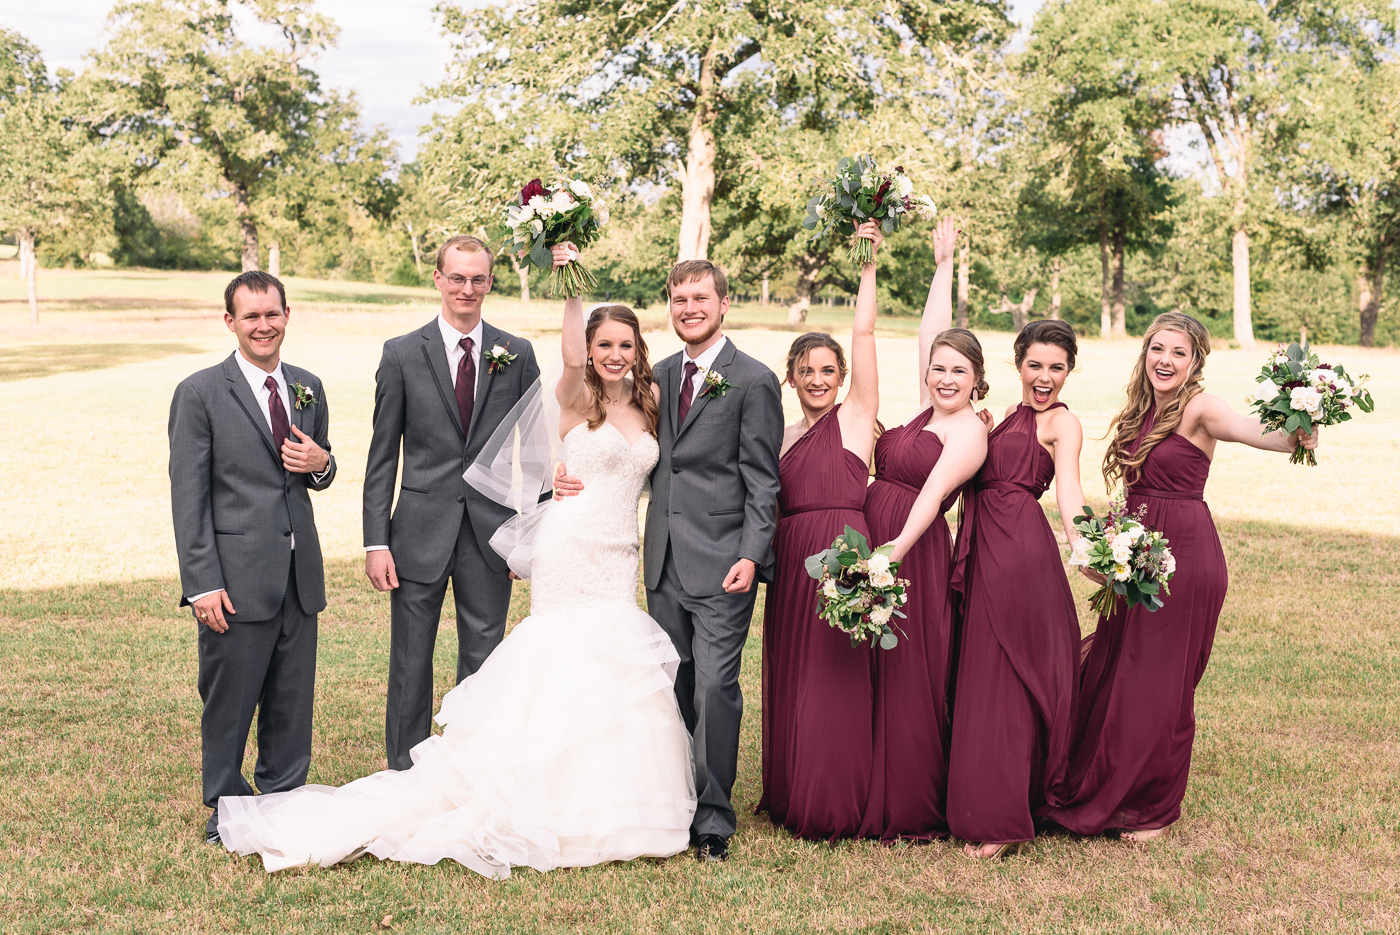 wedding party wedding portrait bridesmaids groomsmen broken arrow ranch college station candid shot